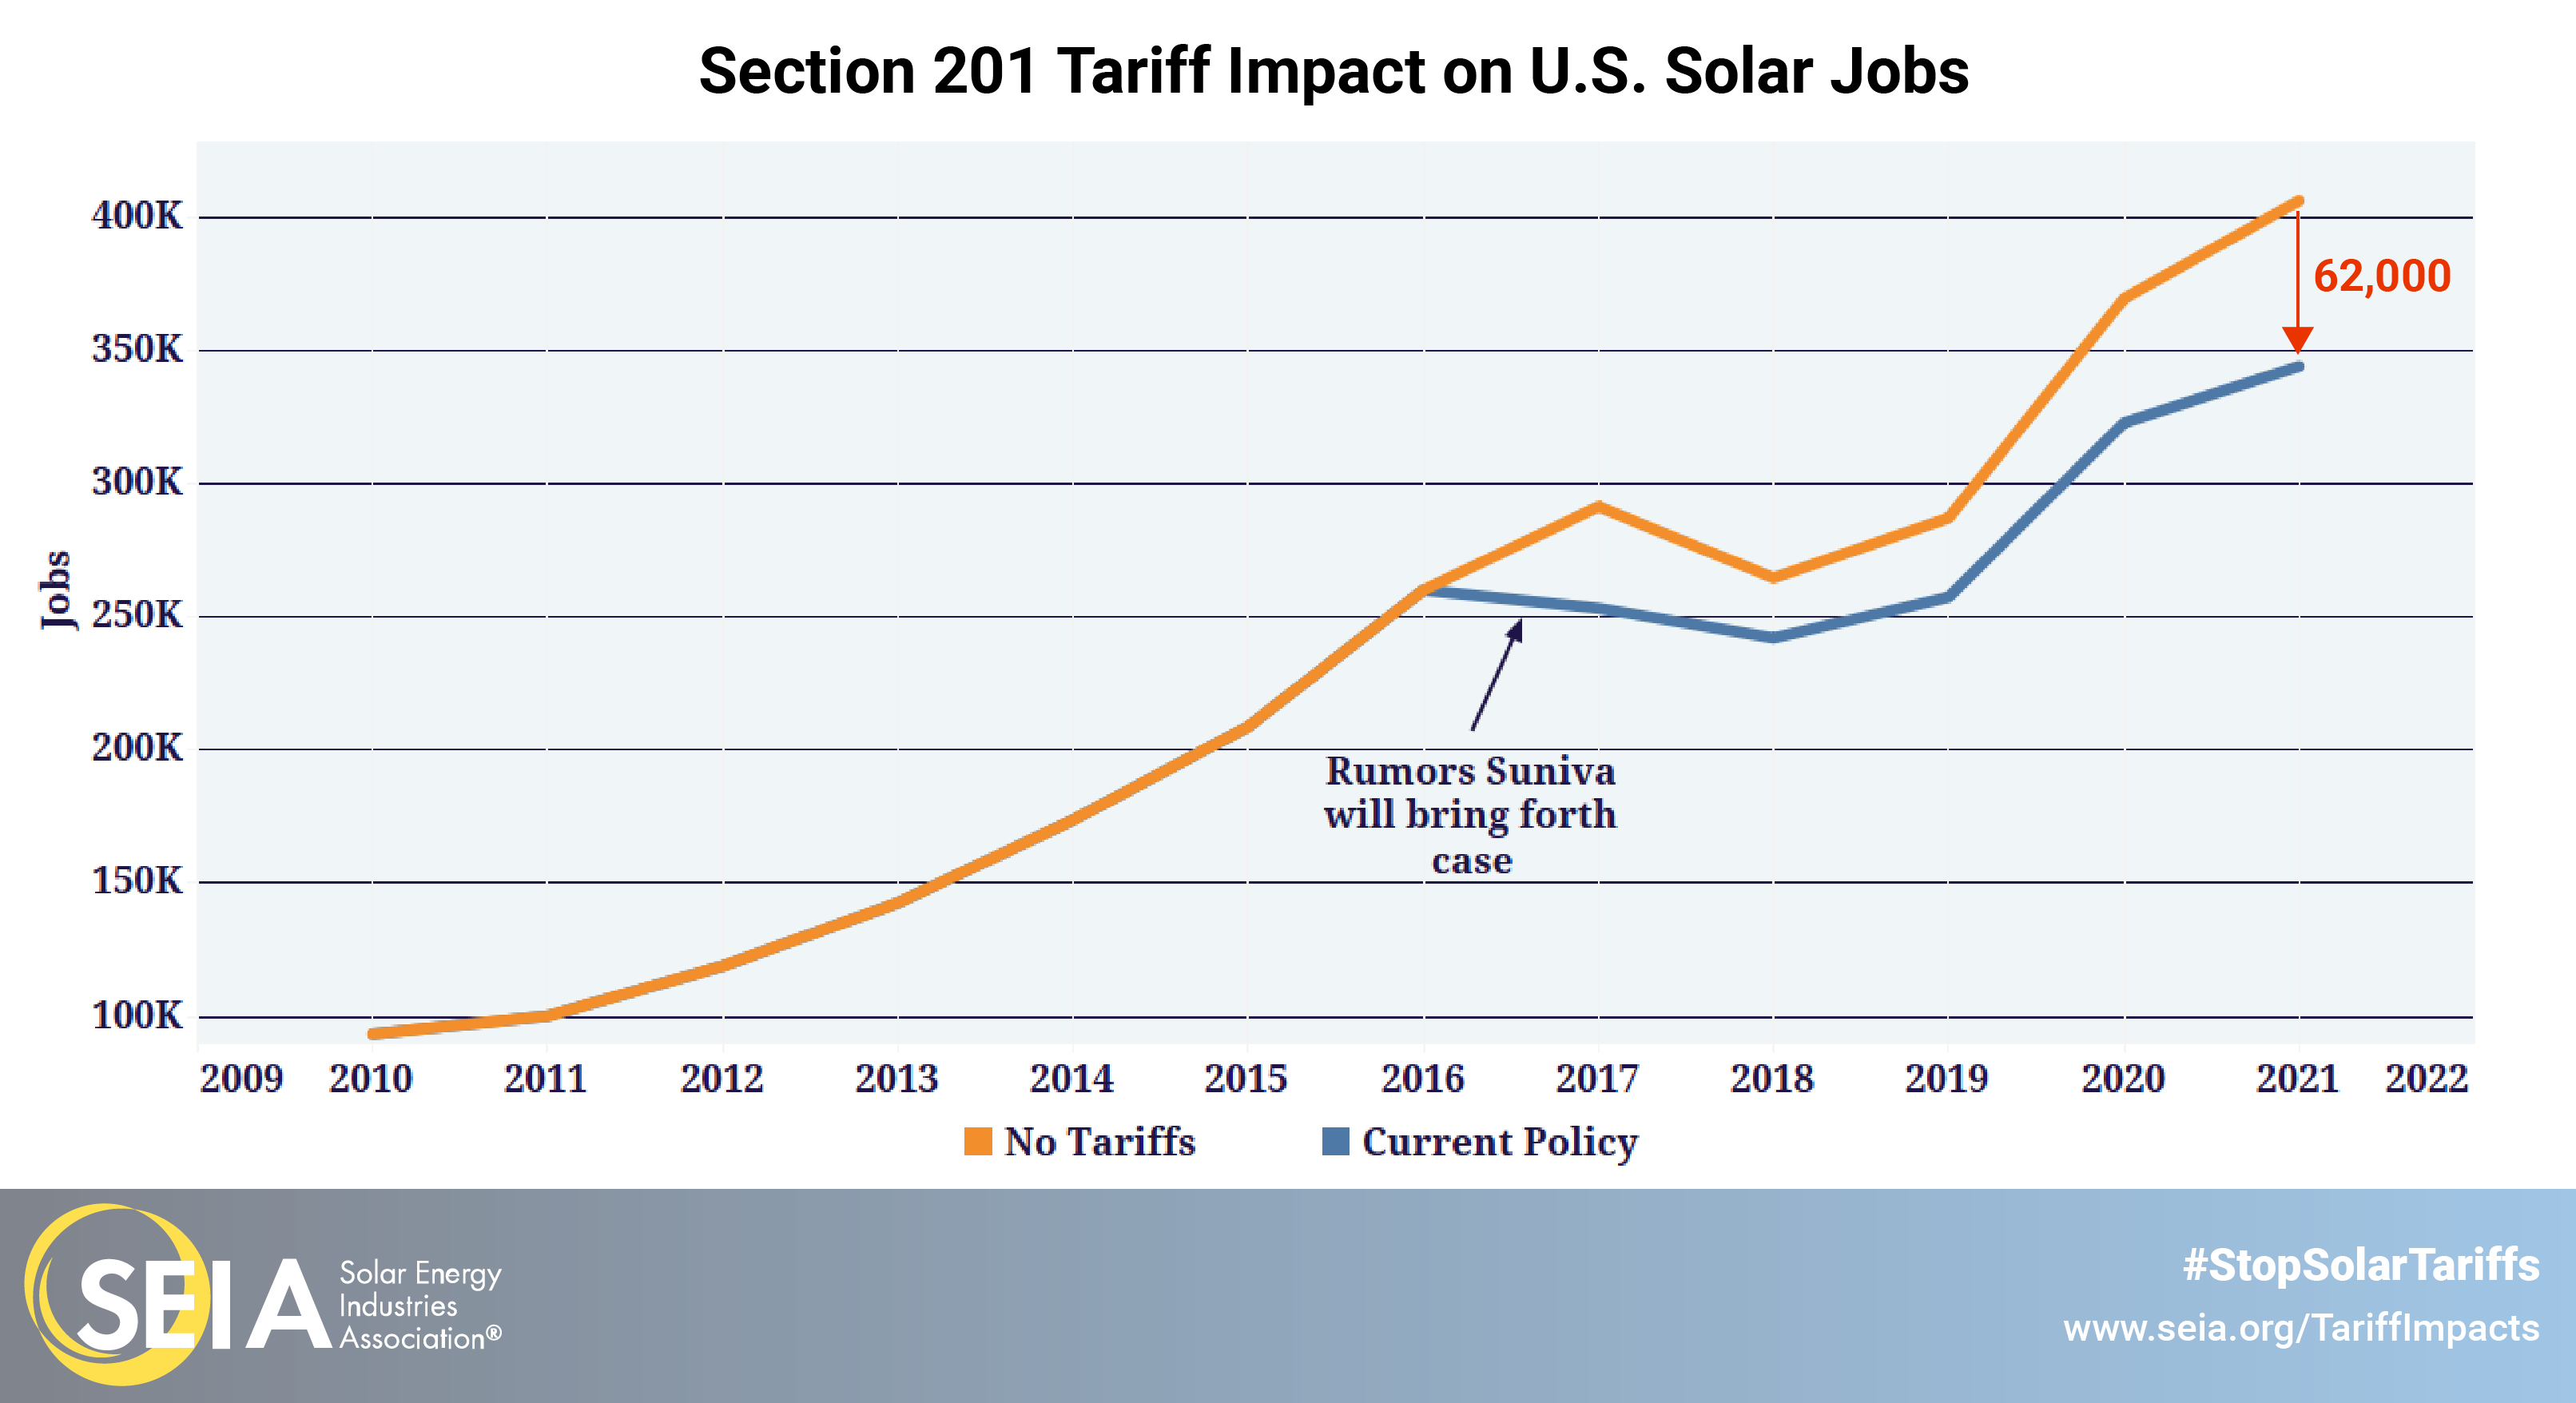 section 201 tariffs impact on solar jobs